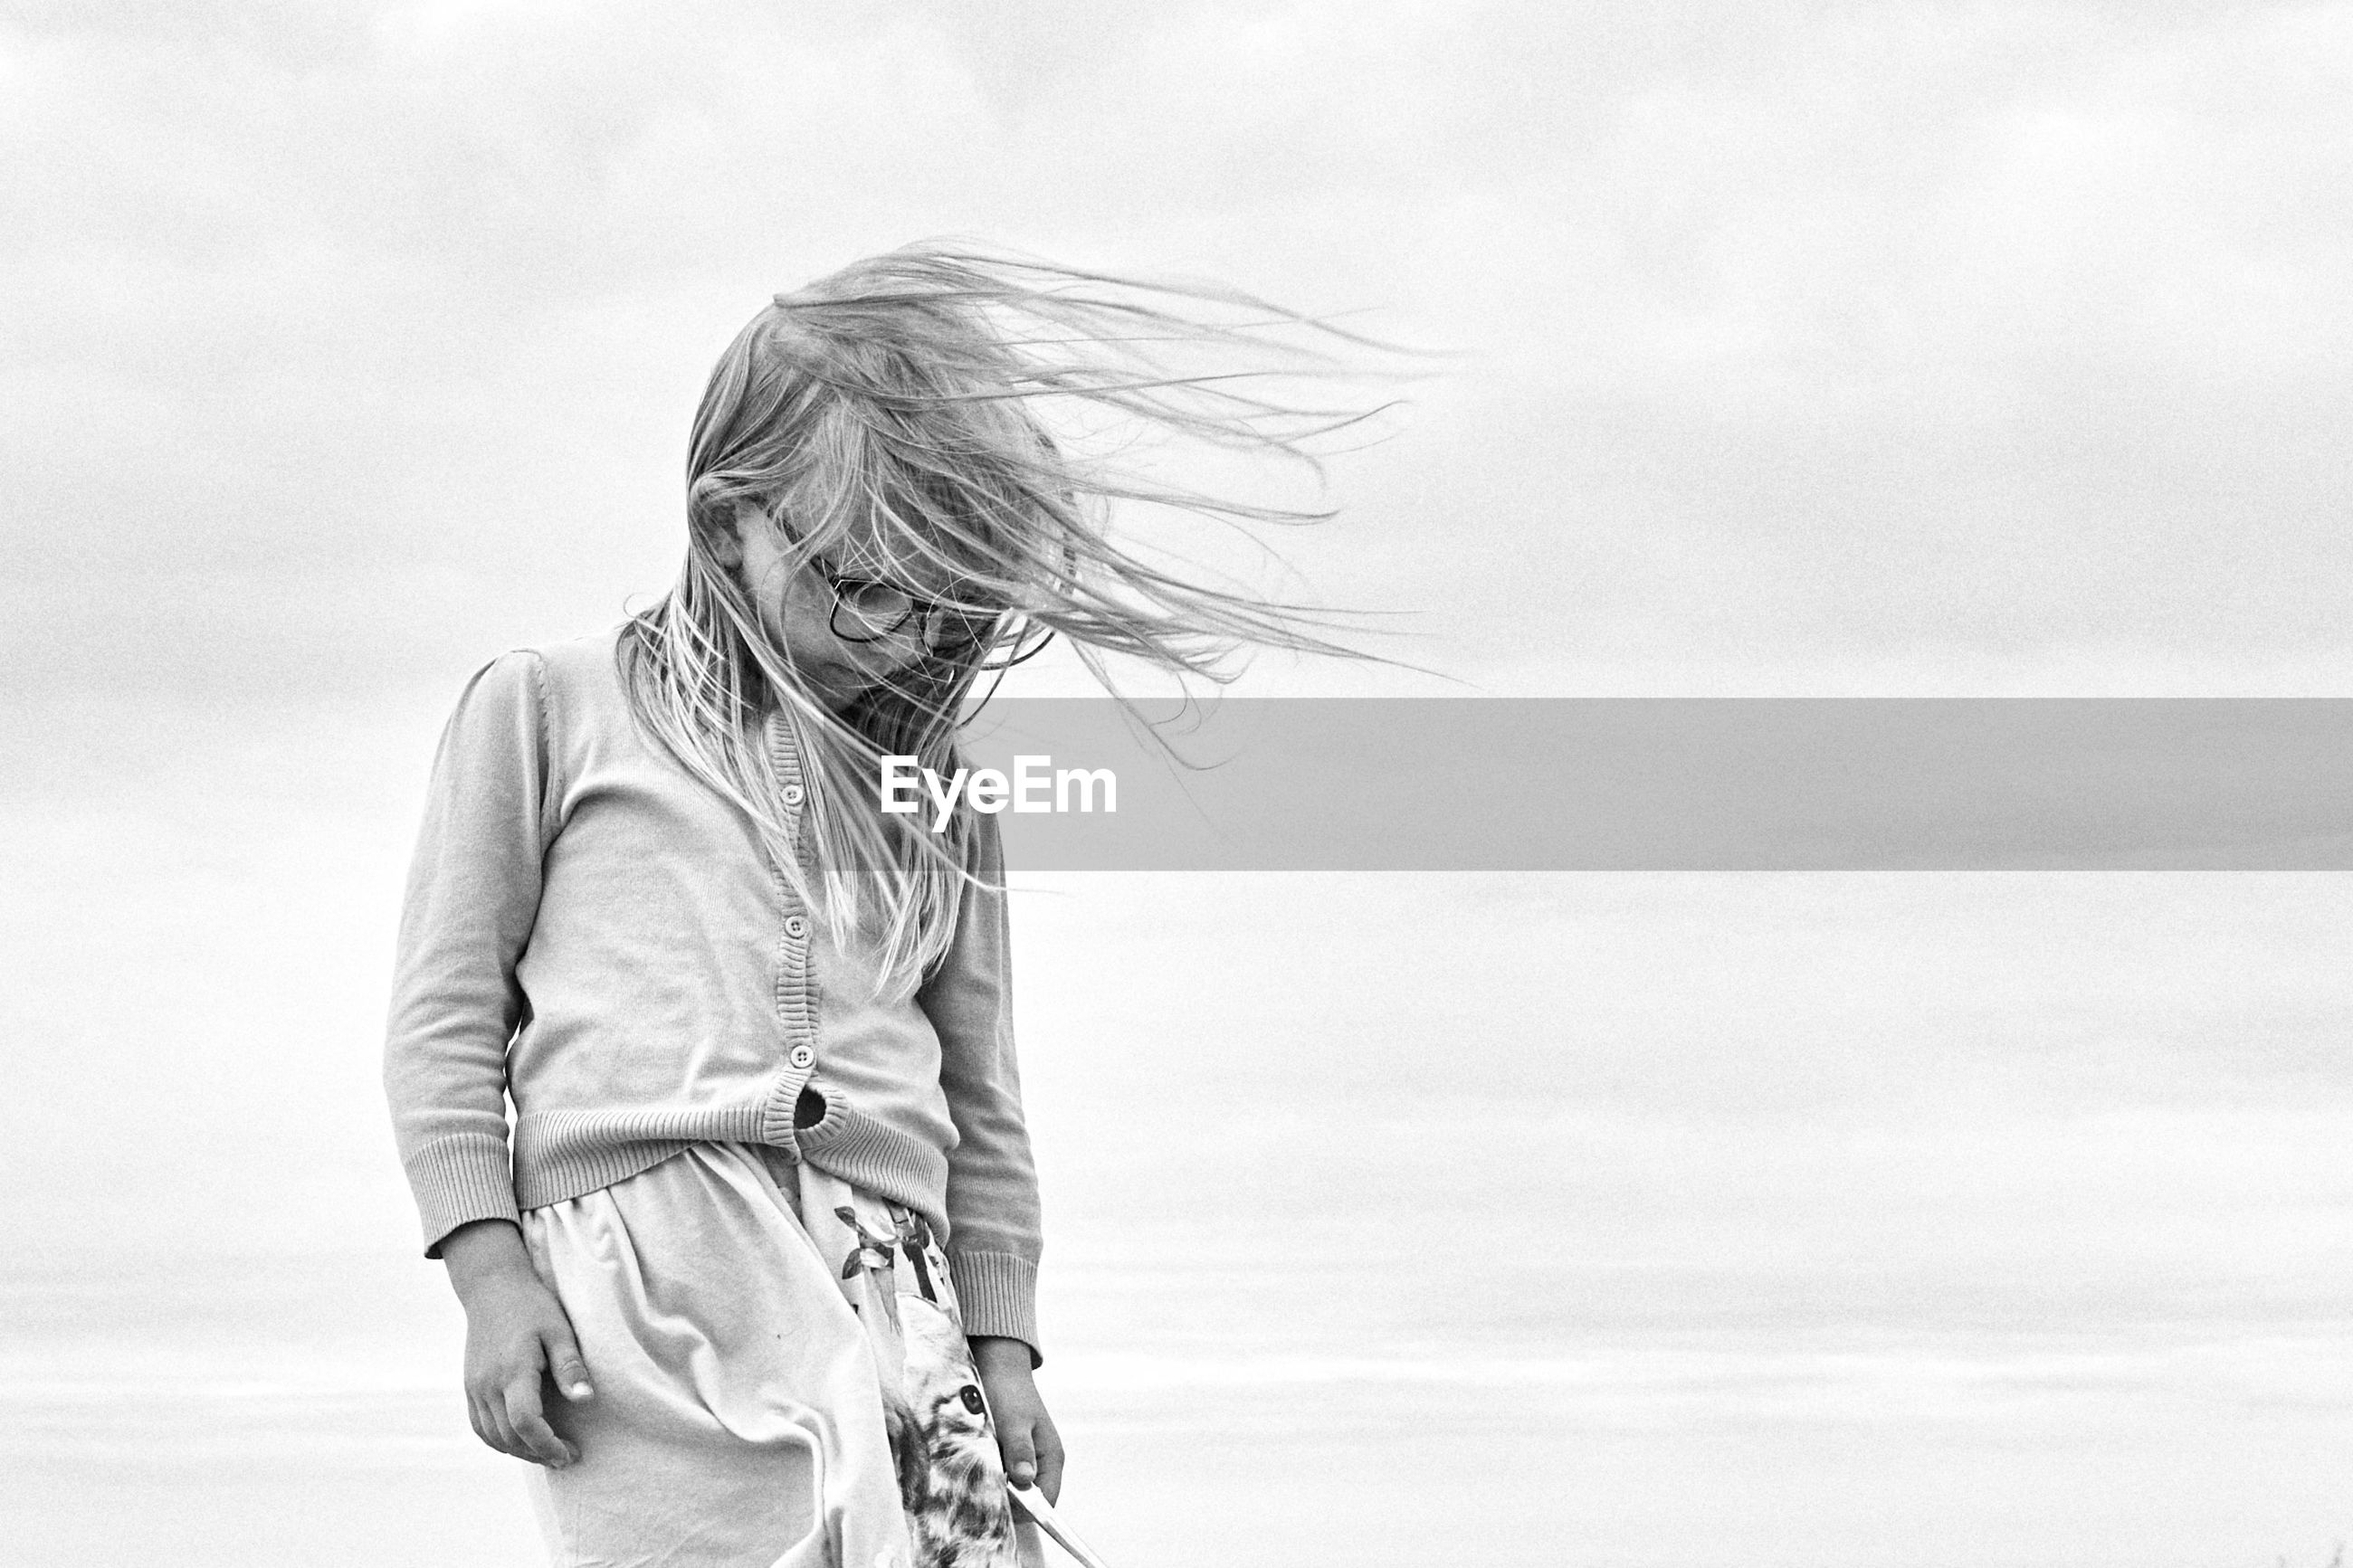 Girl with tousled hair standing against sky